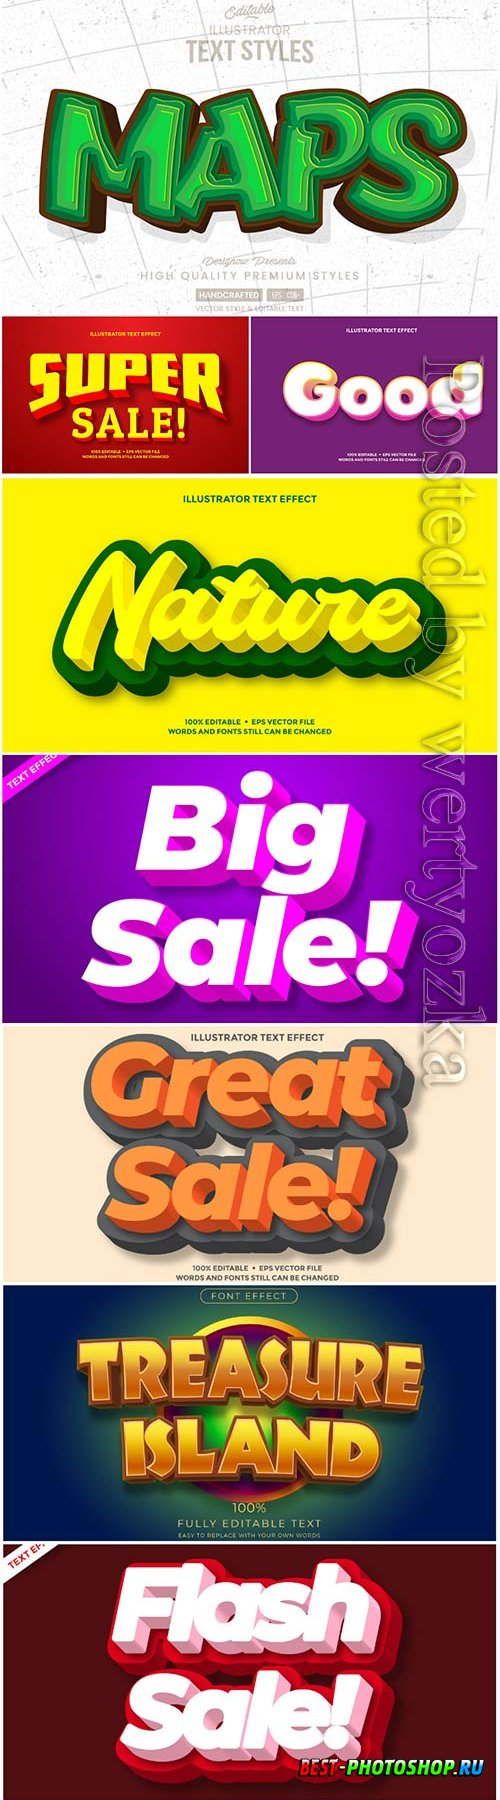 Vector text effect in style 3d